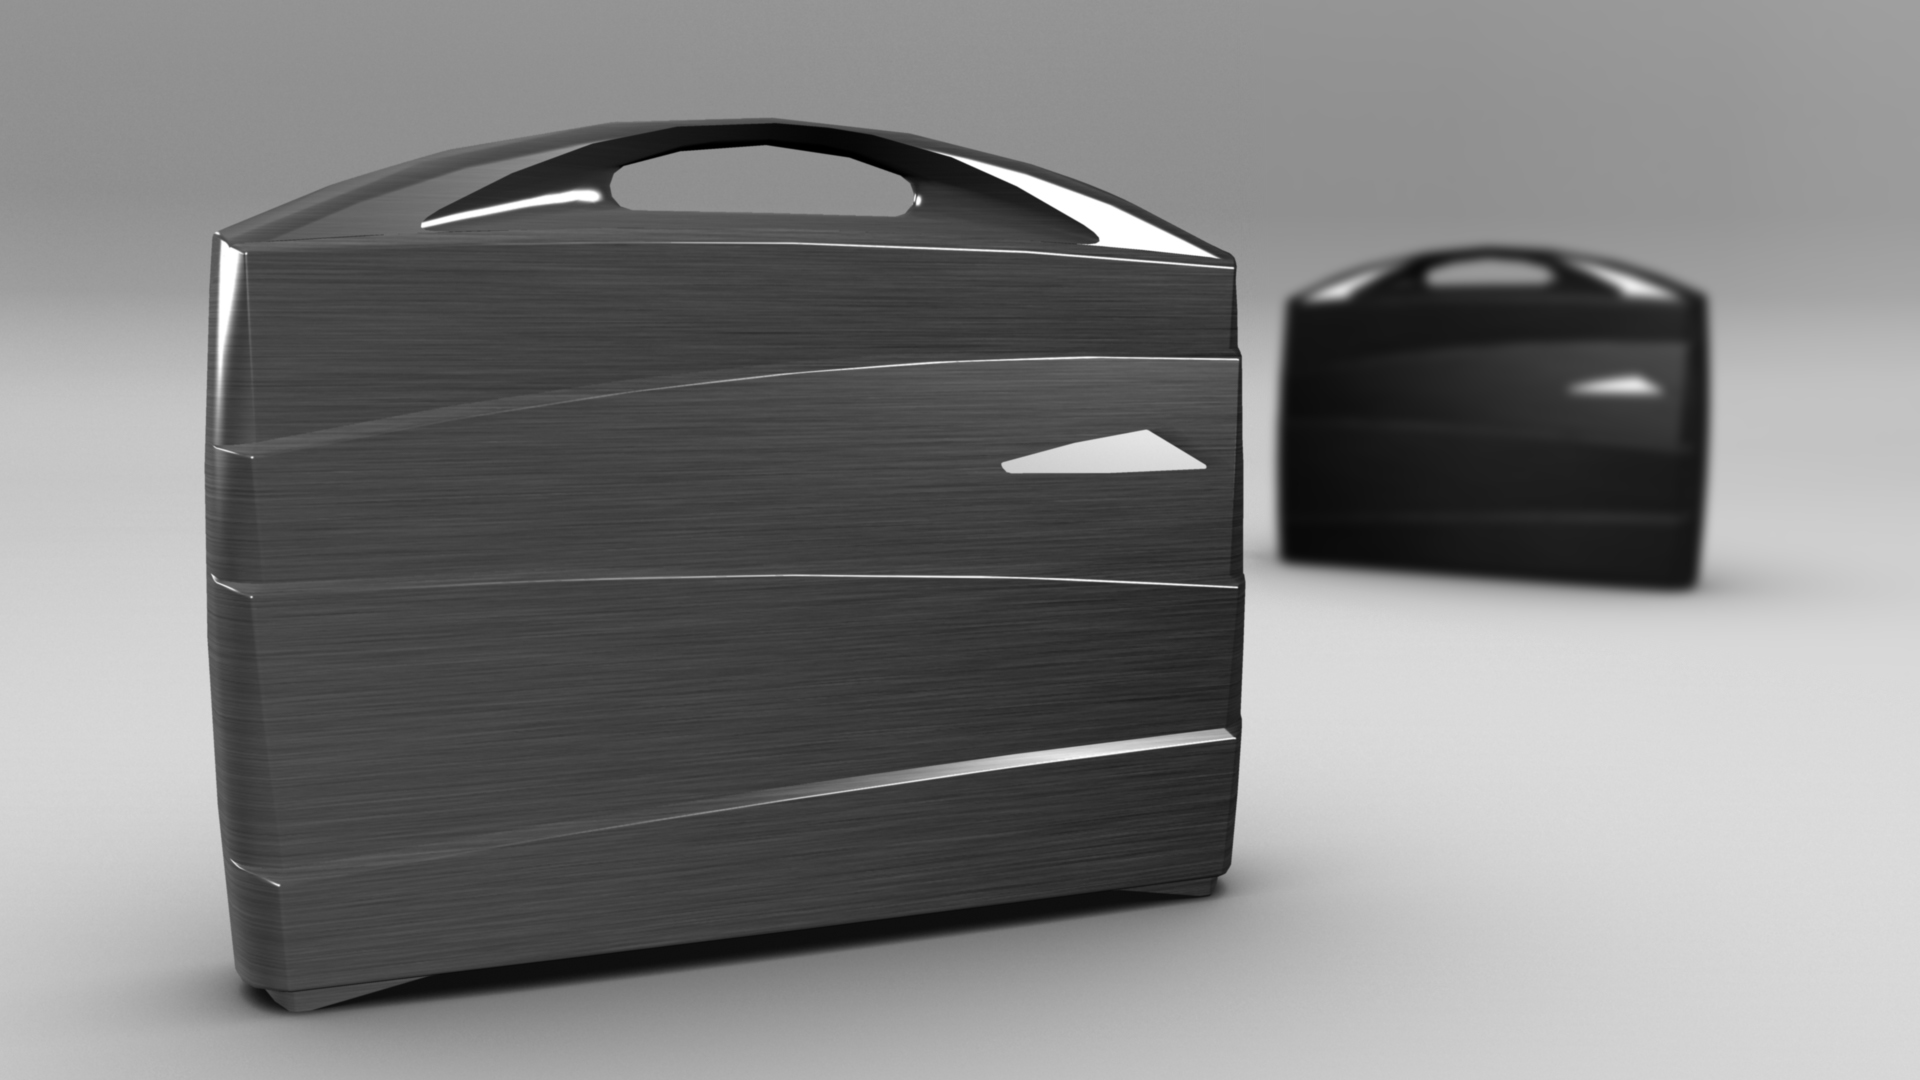 metal suitcase 3d model max fbx ma mb obj 286026